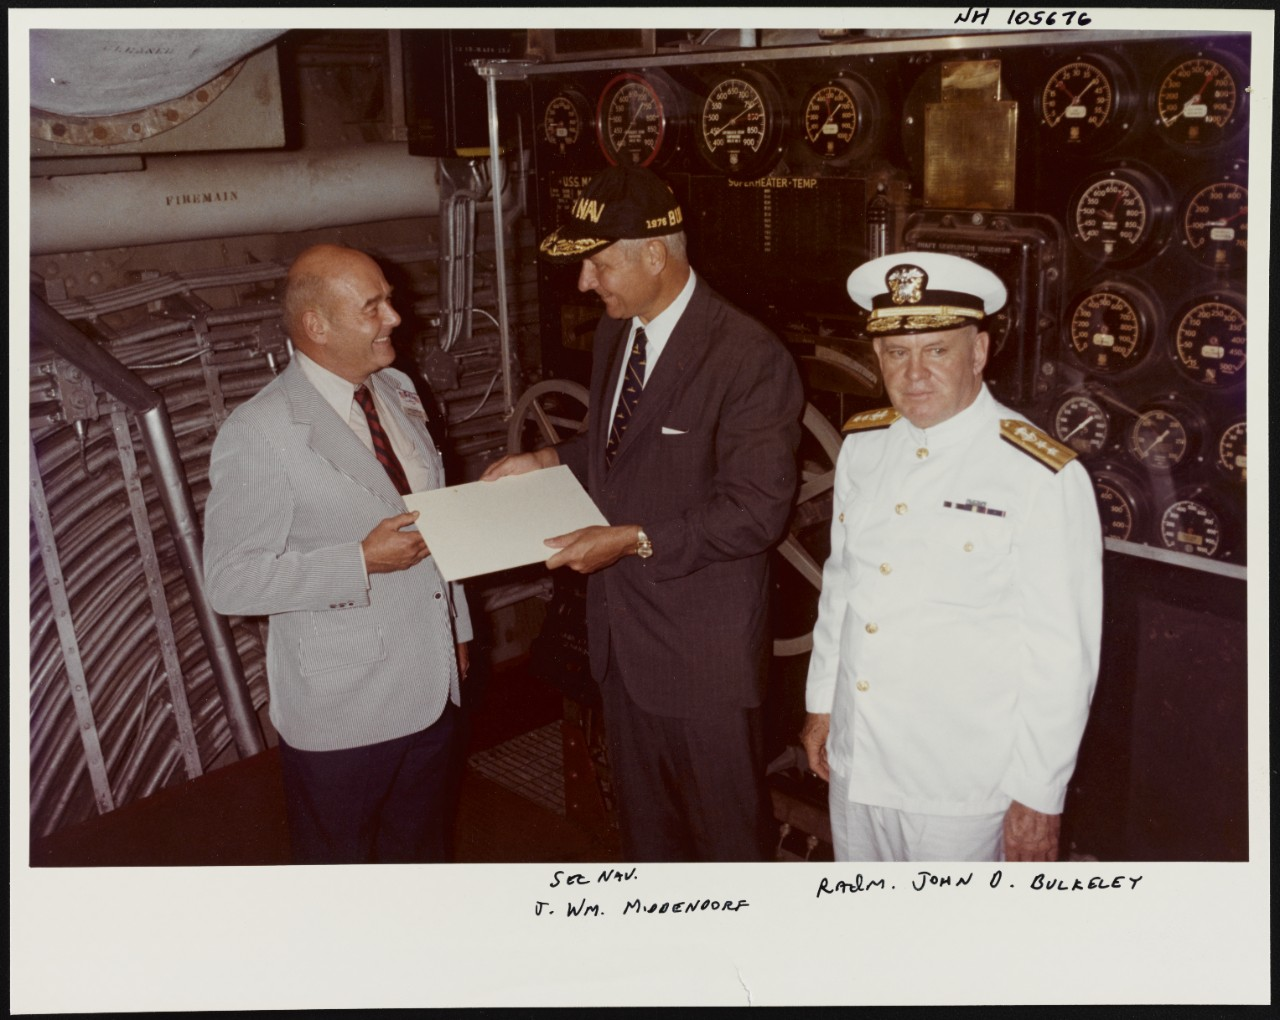 Photo #: NH 105676 Secretary of the Navy J. William Middendorf Rear Admiral John D. Bulkeley, USN